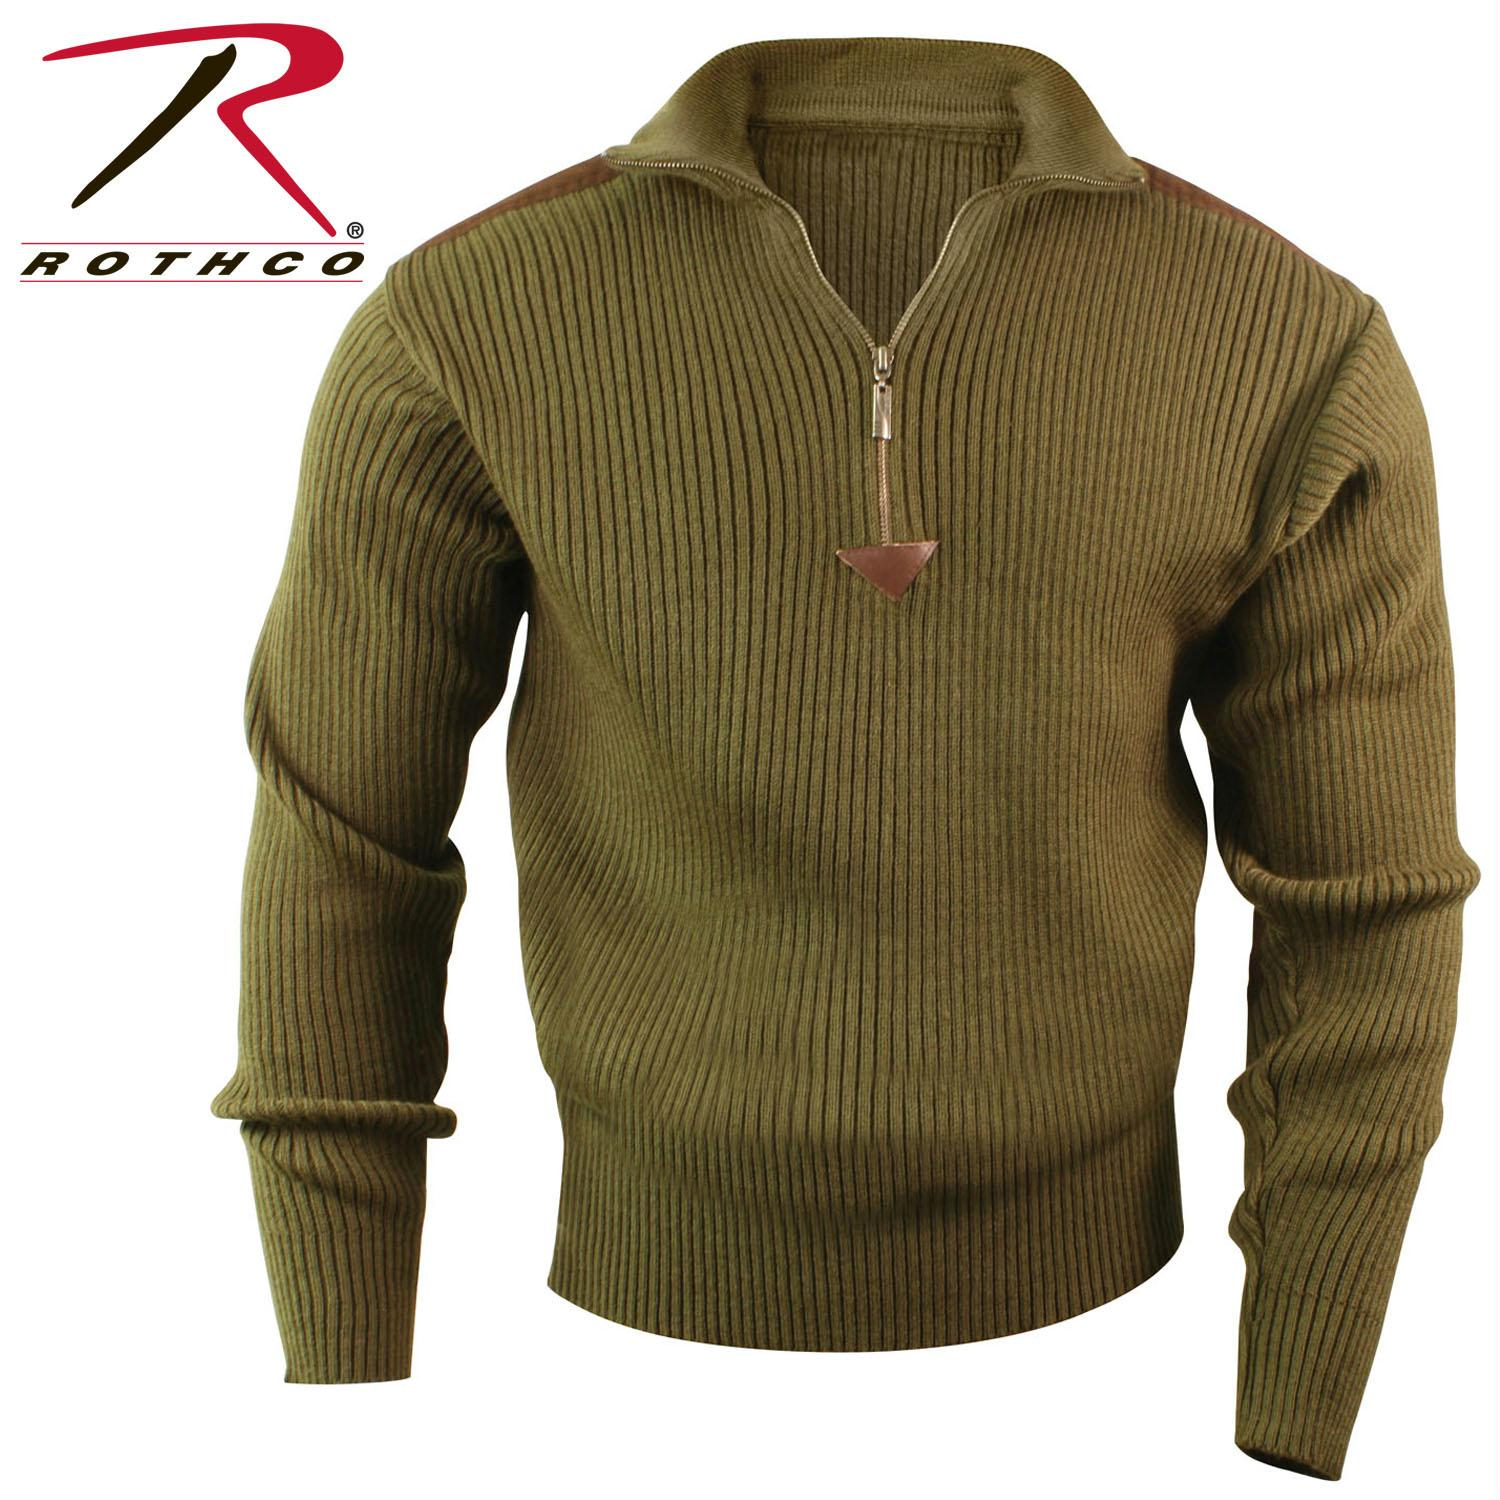 Rothco Quarter Zip Acrylic Commando Sweater - Olive Drab / L